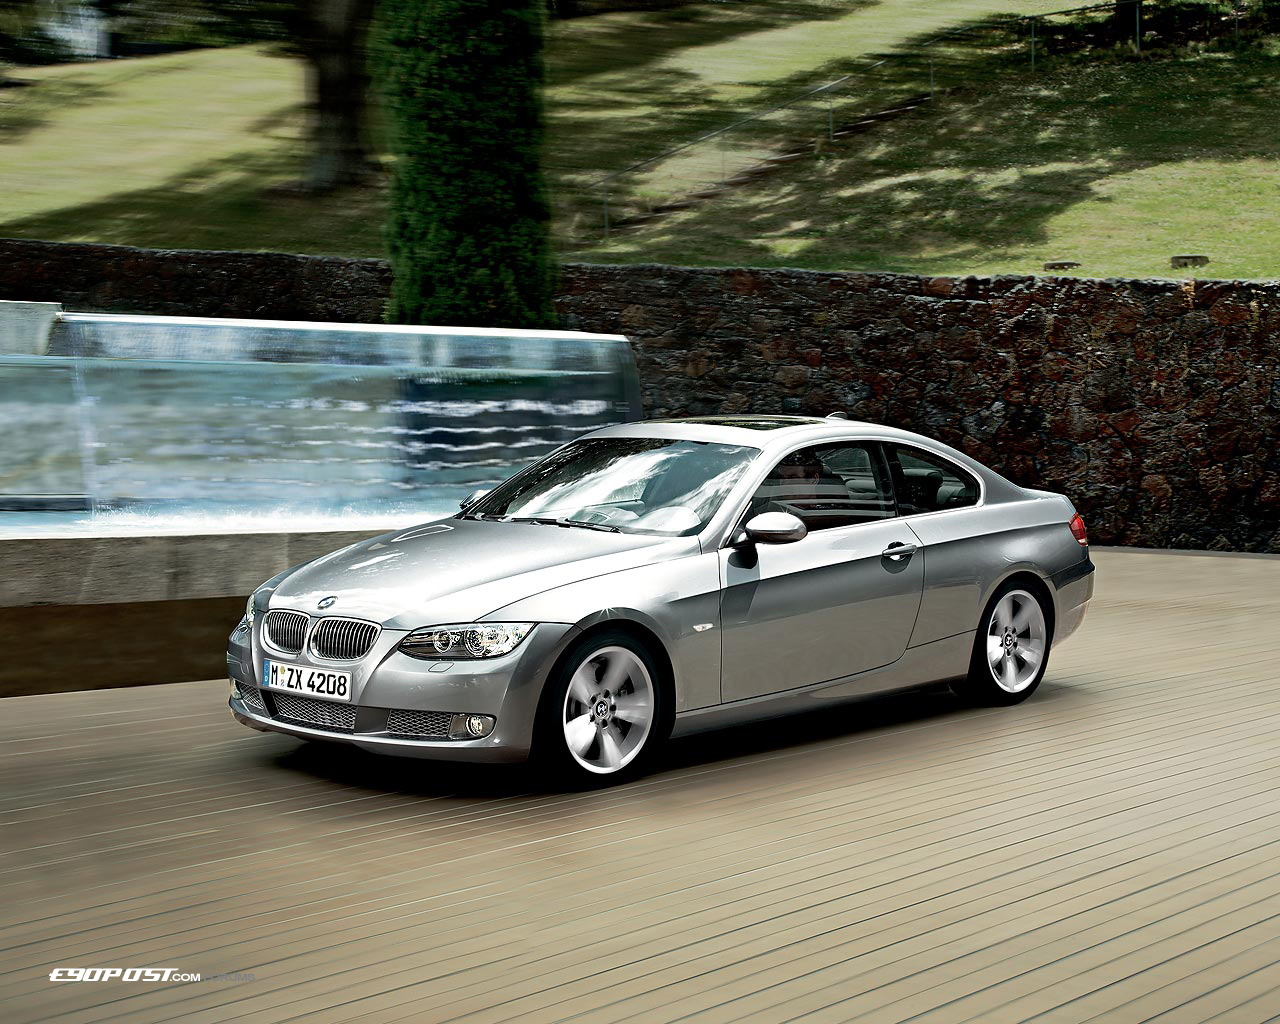 Bmw 335i Bmw Wallpaper 40954 Fanpop